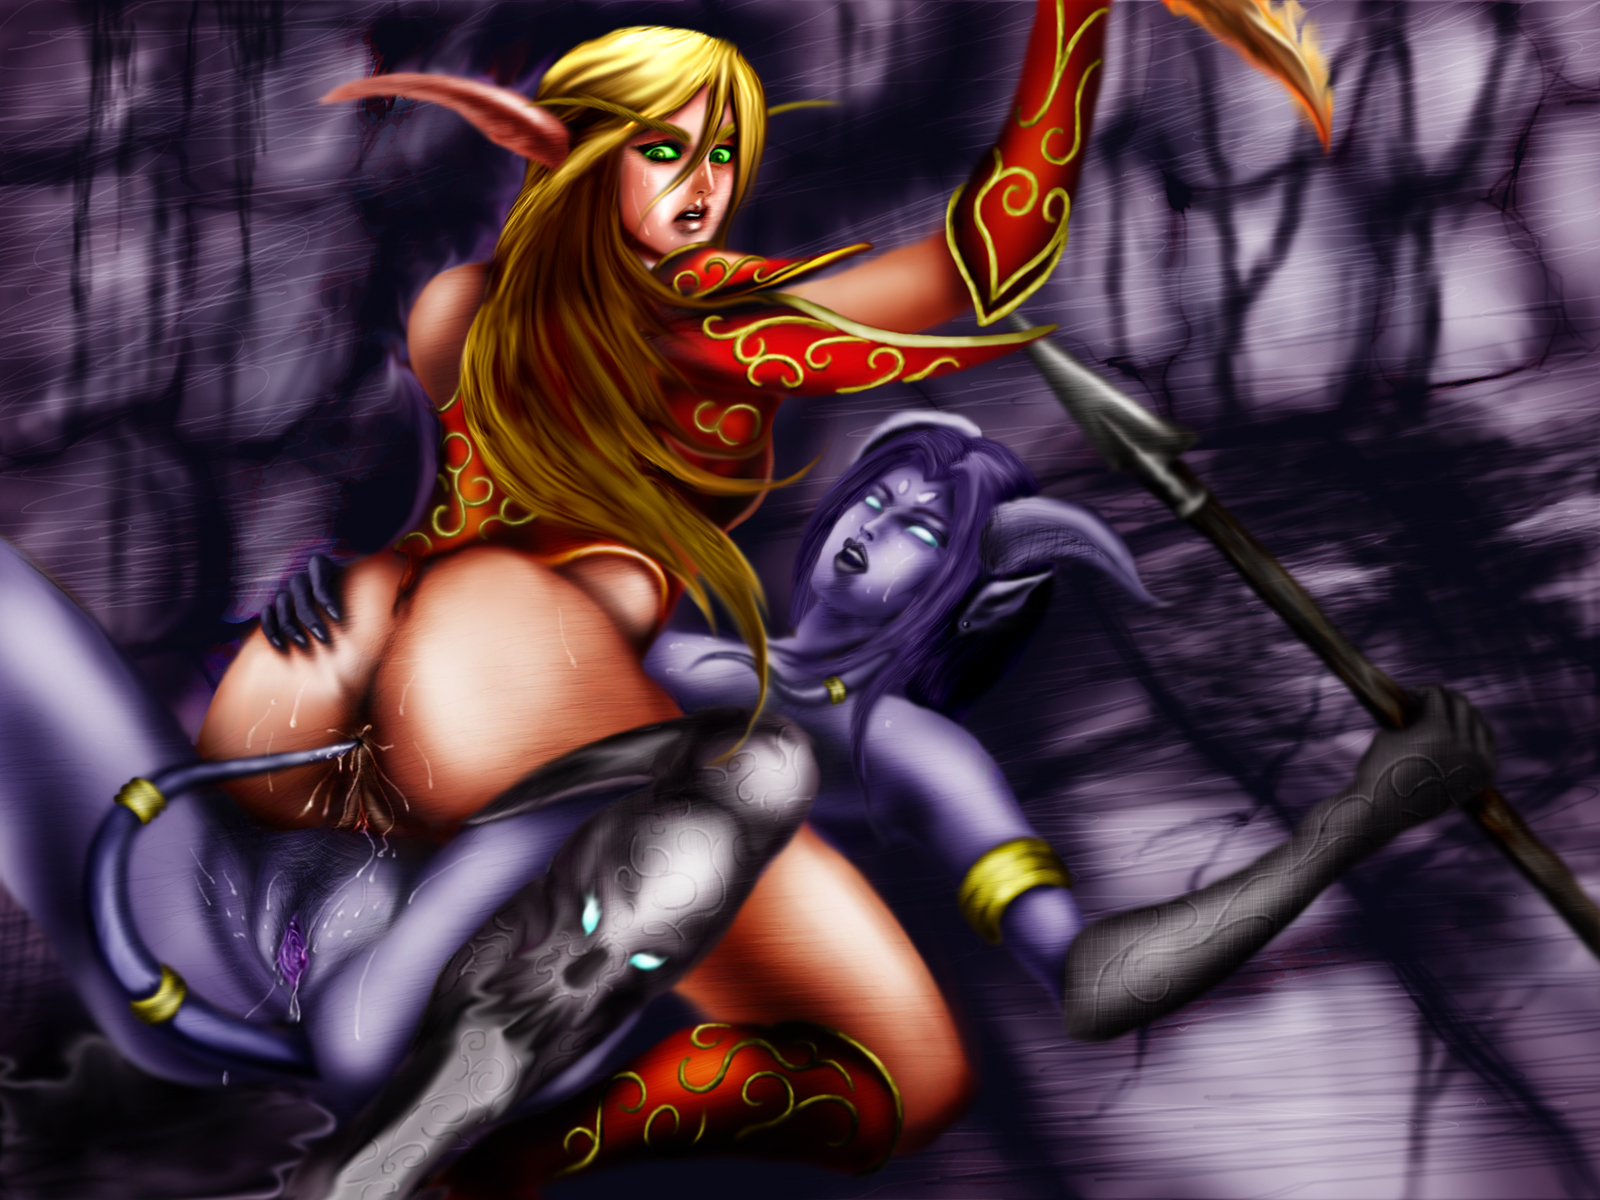 Hot sexy art warcraft sex images